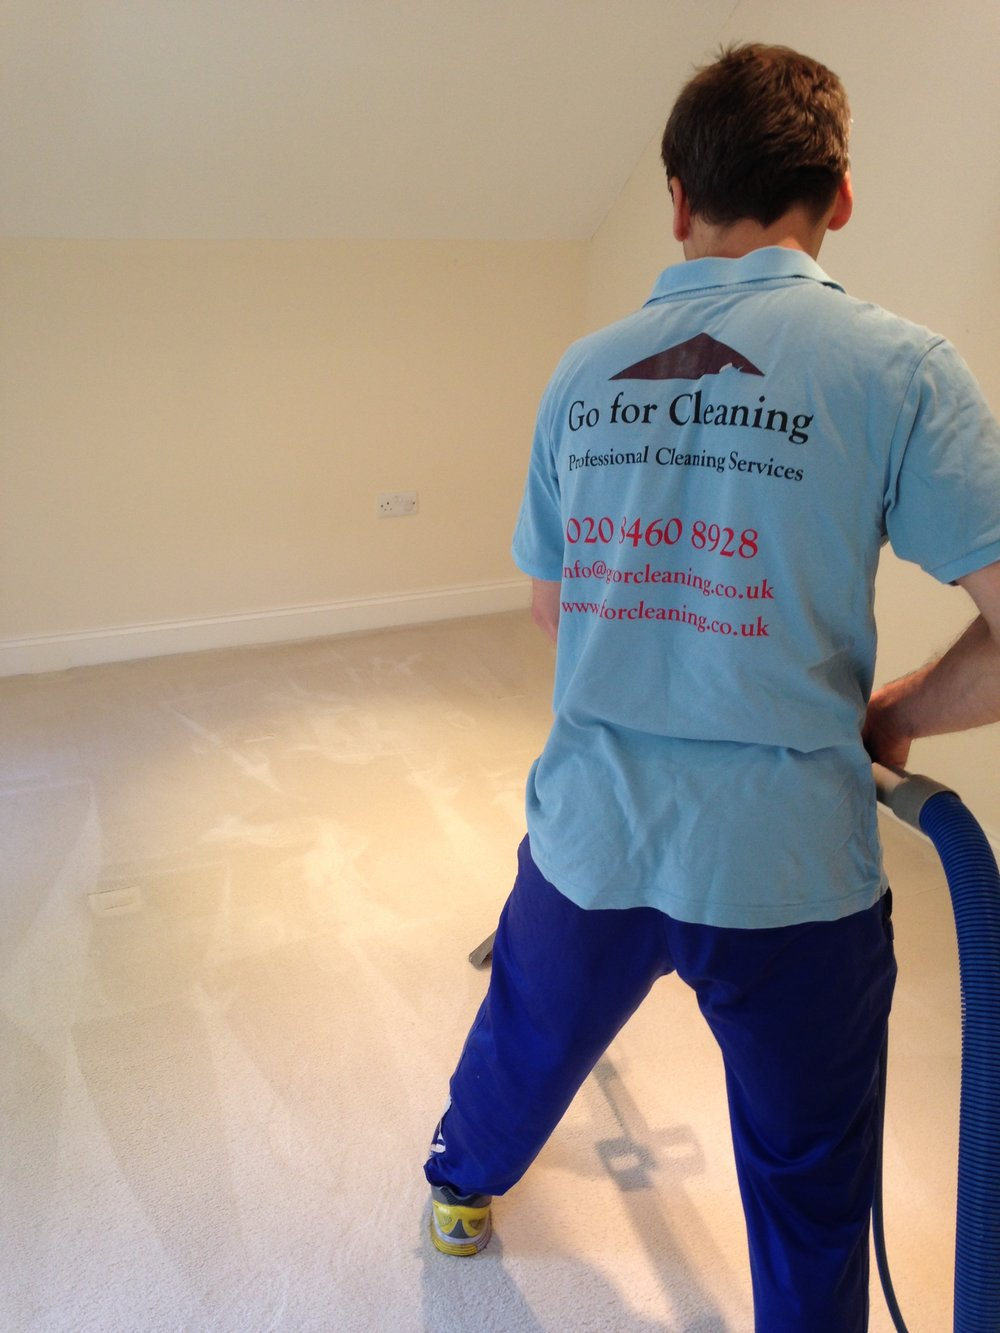 professional carpet cleaner London - Go For Cleaning LTD.jpg